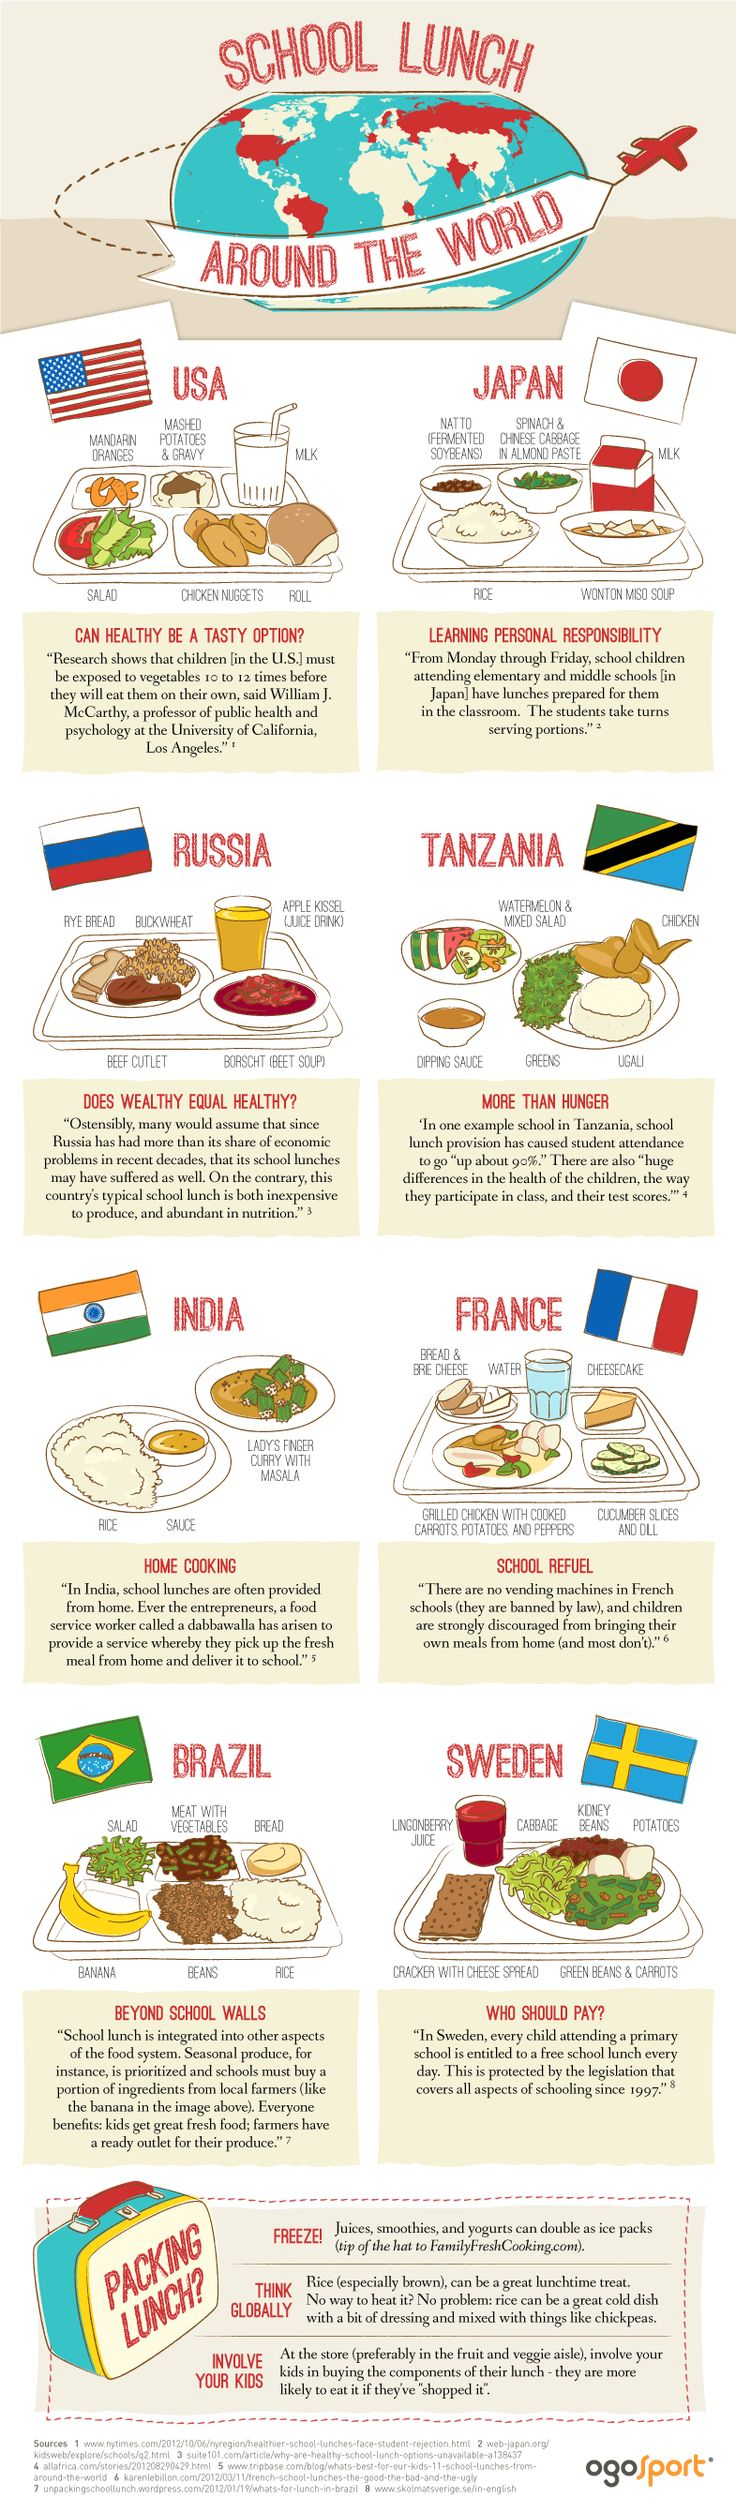 best ideas about school lunch menu healthy school lunch around the world